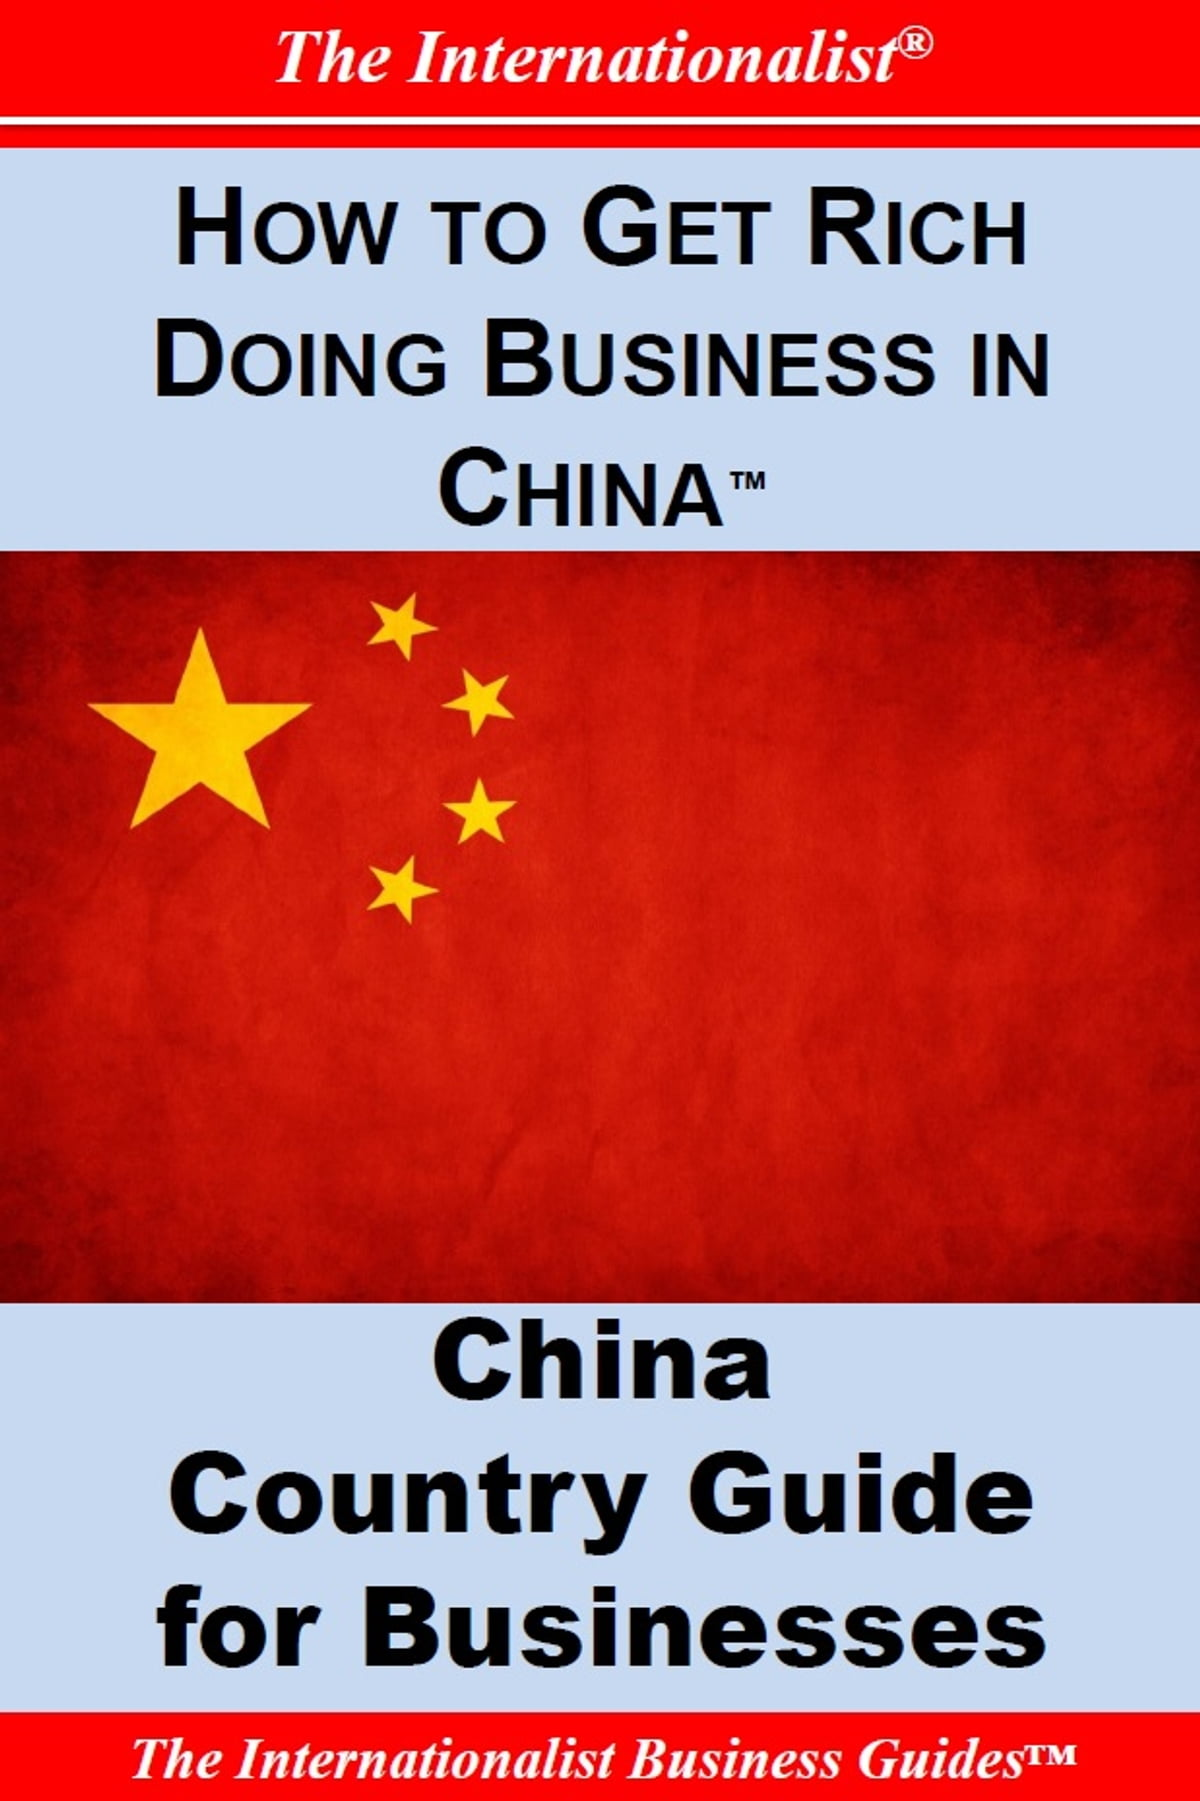 How to Get Rich Doing Business in China eBook by Patrick W. Nee -  1230000213354 | Rakuten Kobo